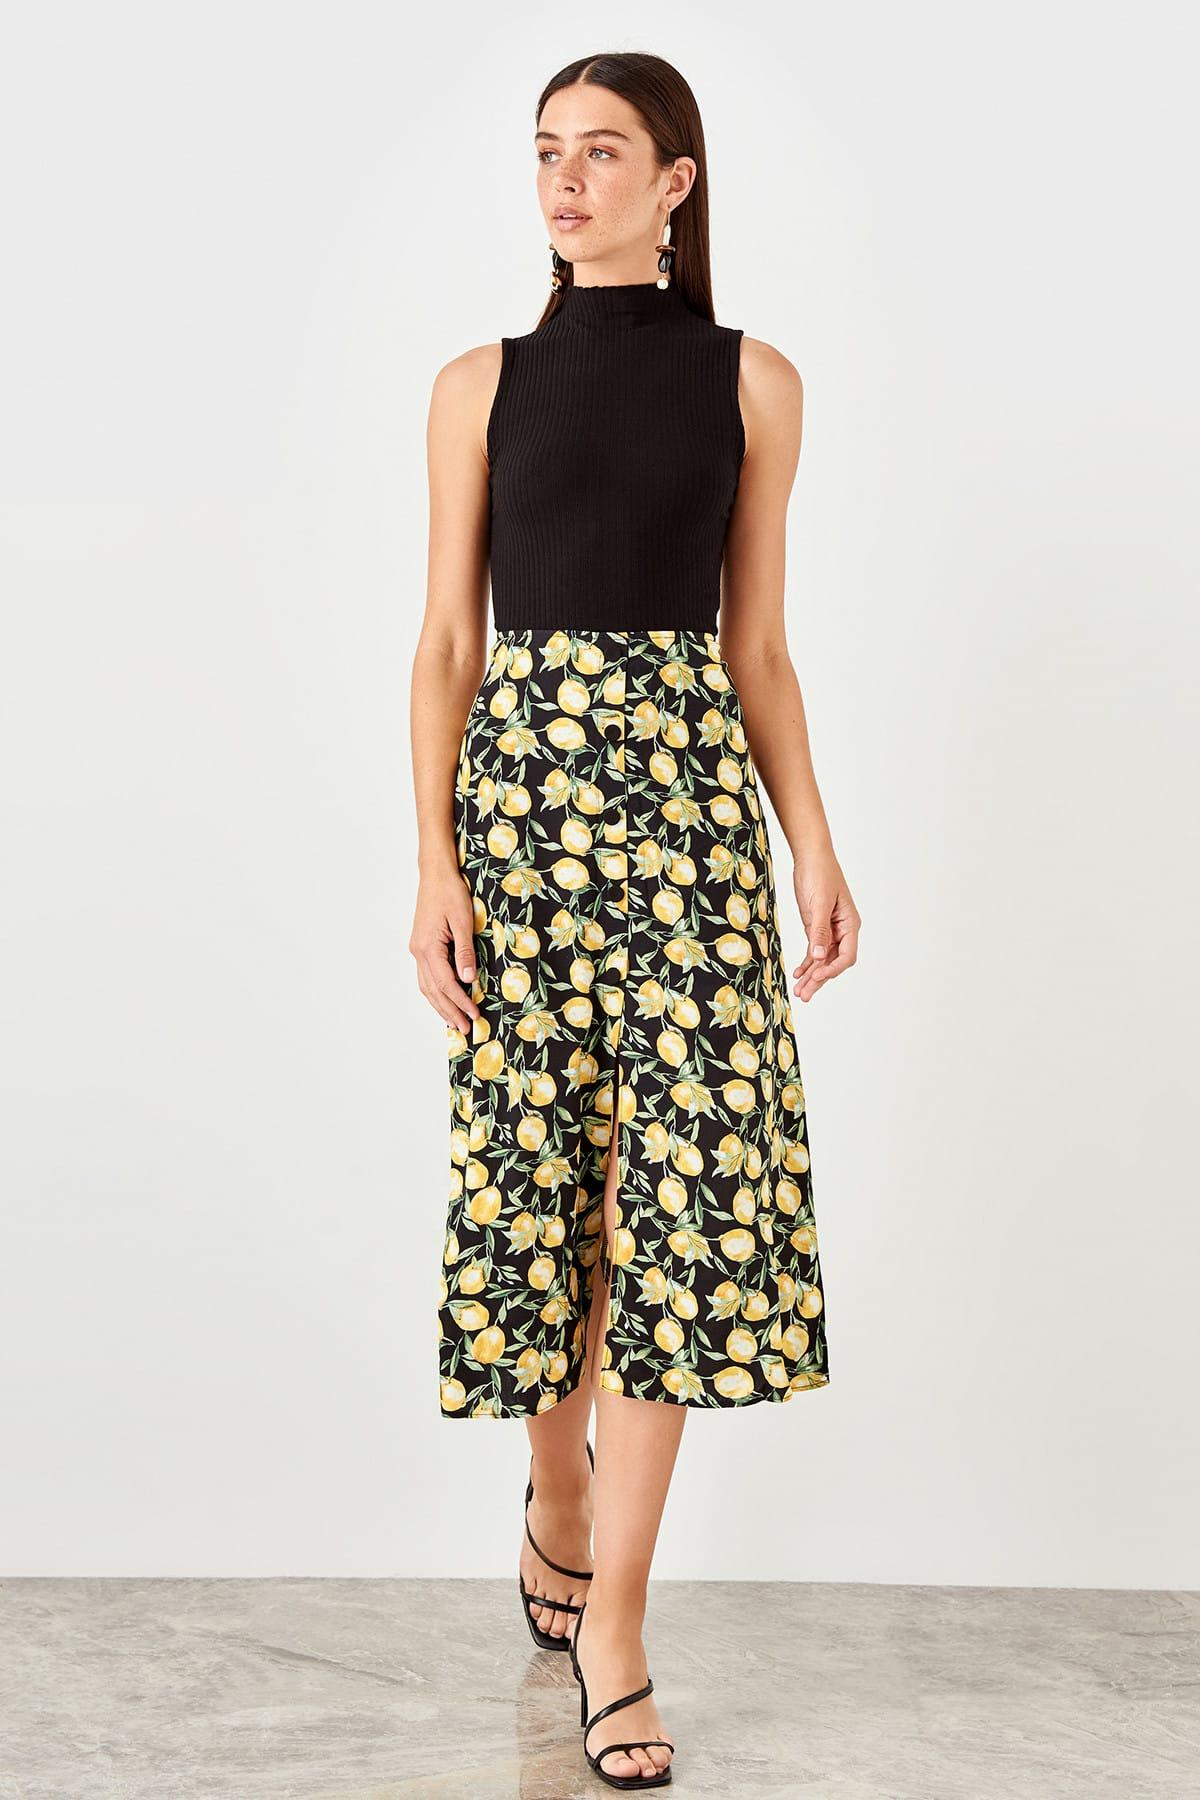 Trendyol Multicolour Lemon Print Skirt TWOSS19LJ0366